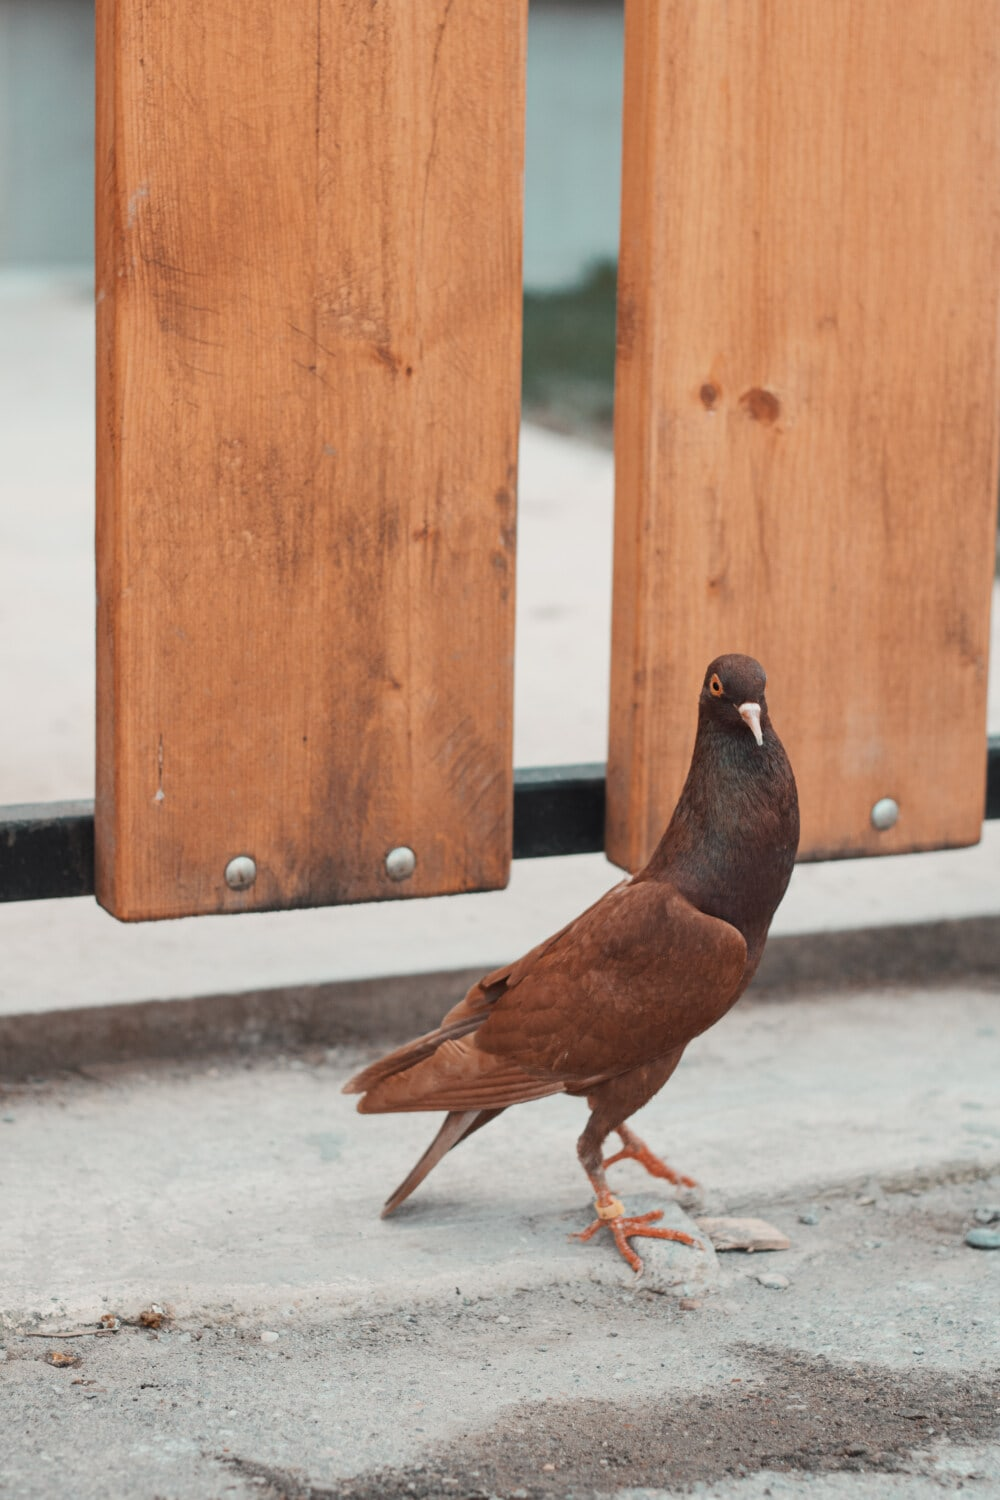 pigeon, light brown, tall, standing, bird, animal, wood, nature, wildlife, outdoors